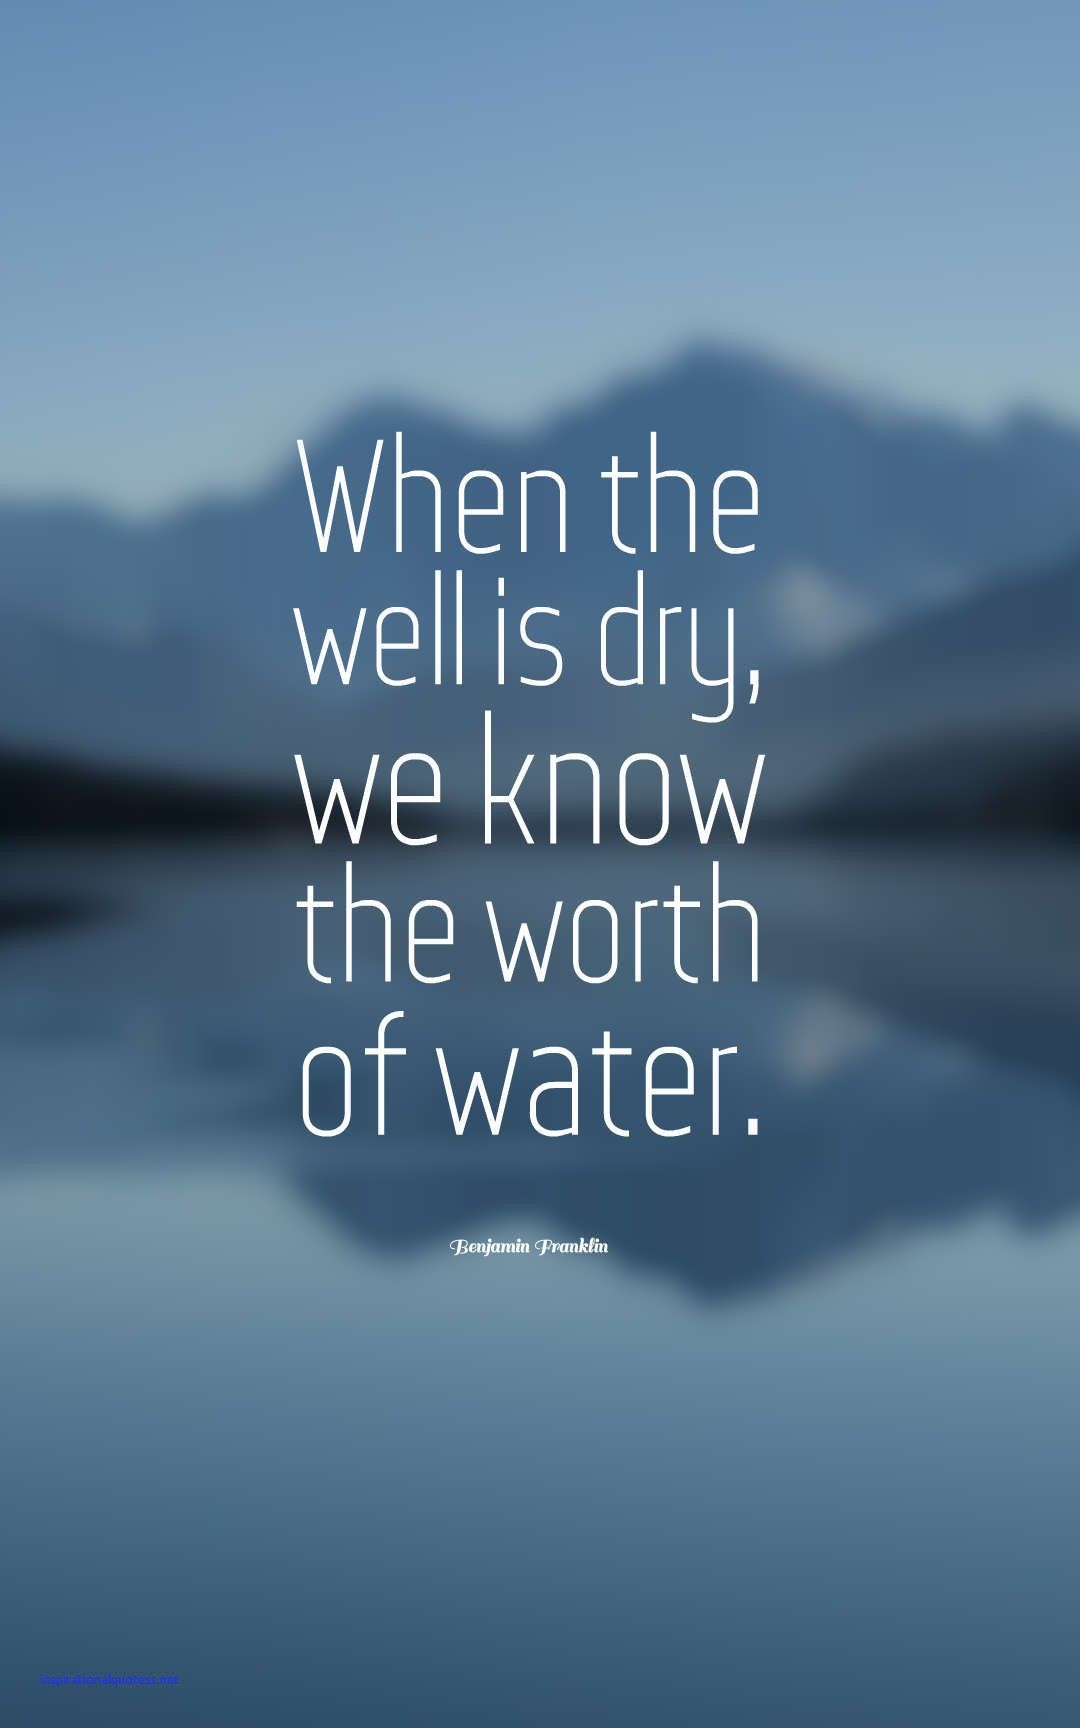 Inspirational Water Quotes Short inspirational quotes